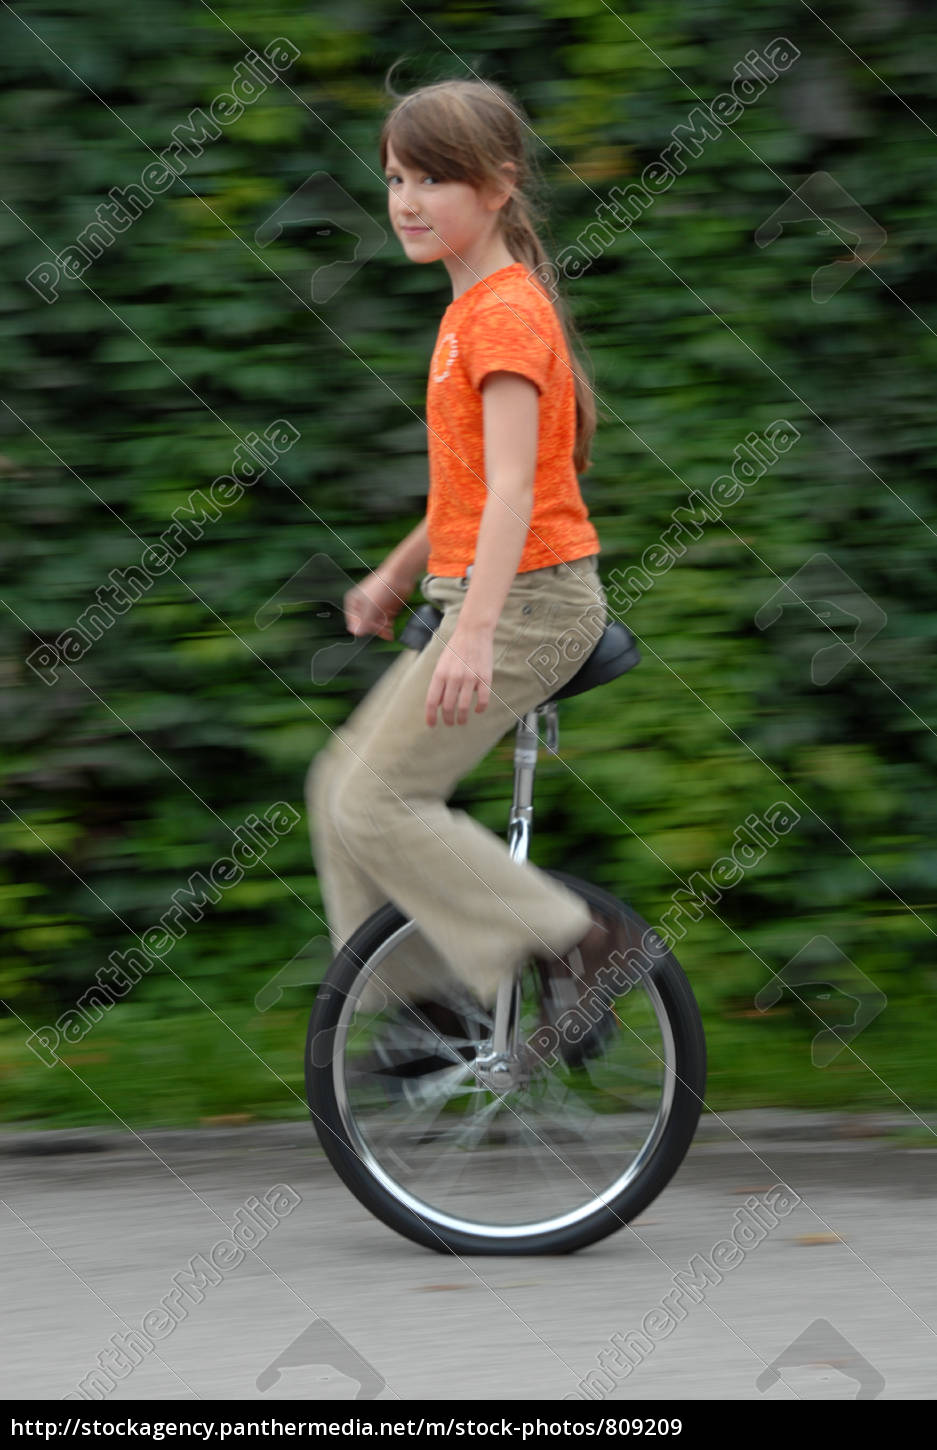 unicycle - 809209